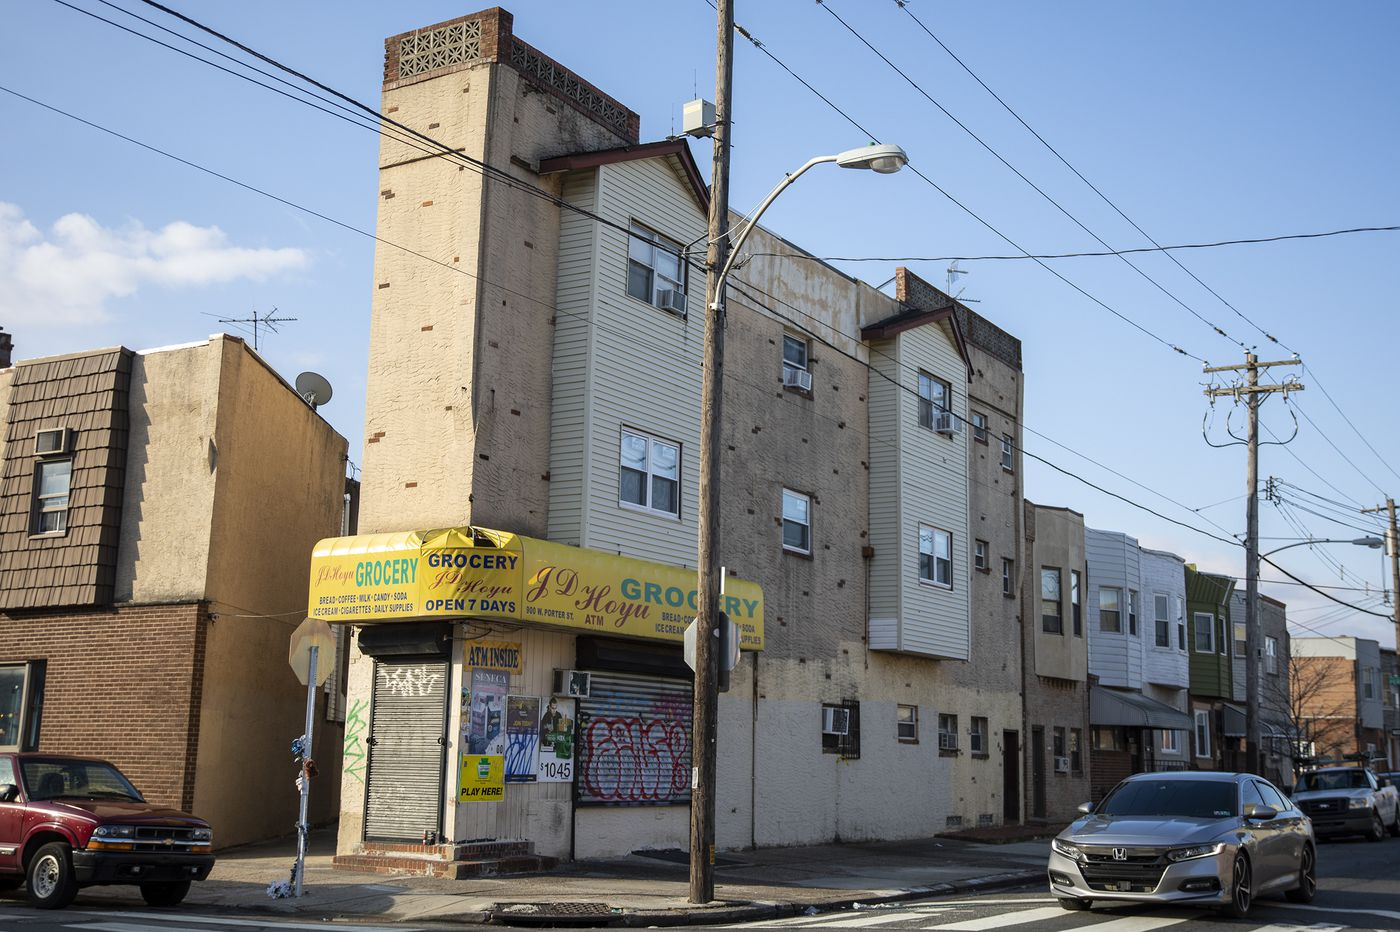 Store employee fatally wounded in South Philly shooting